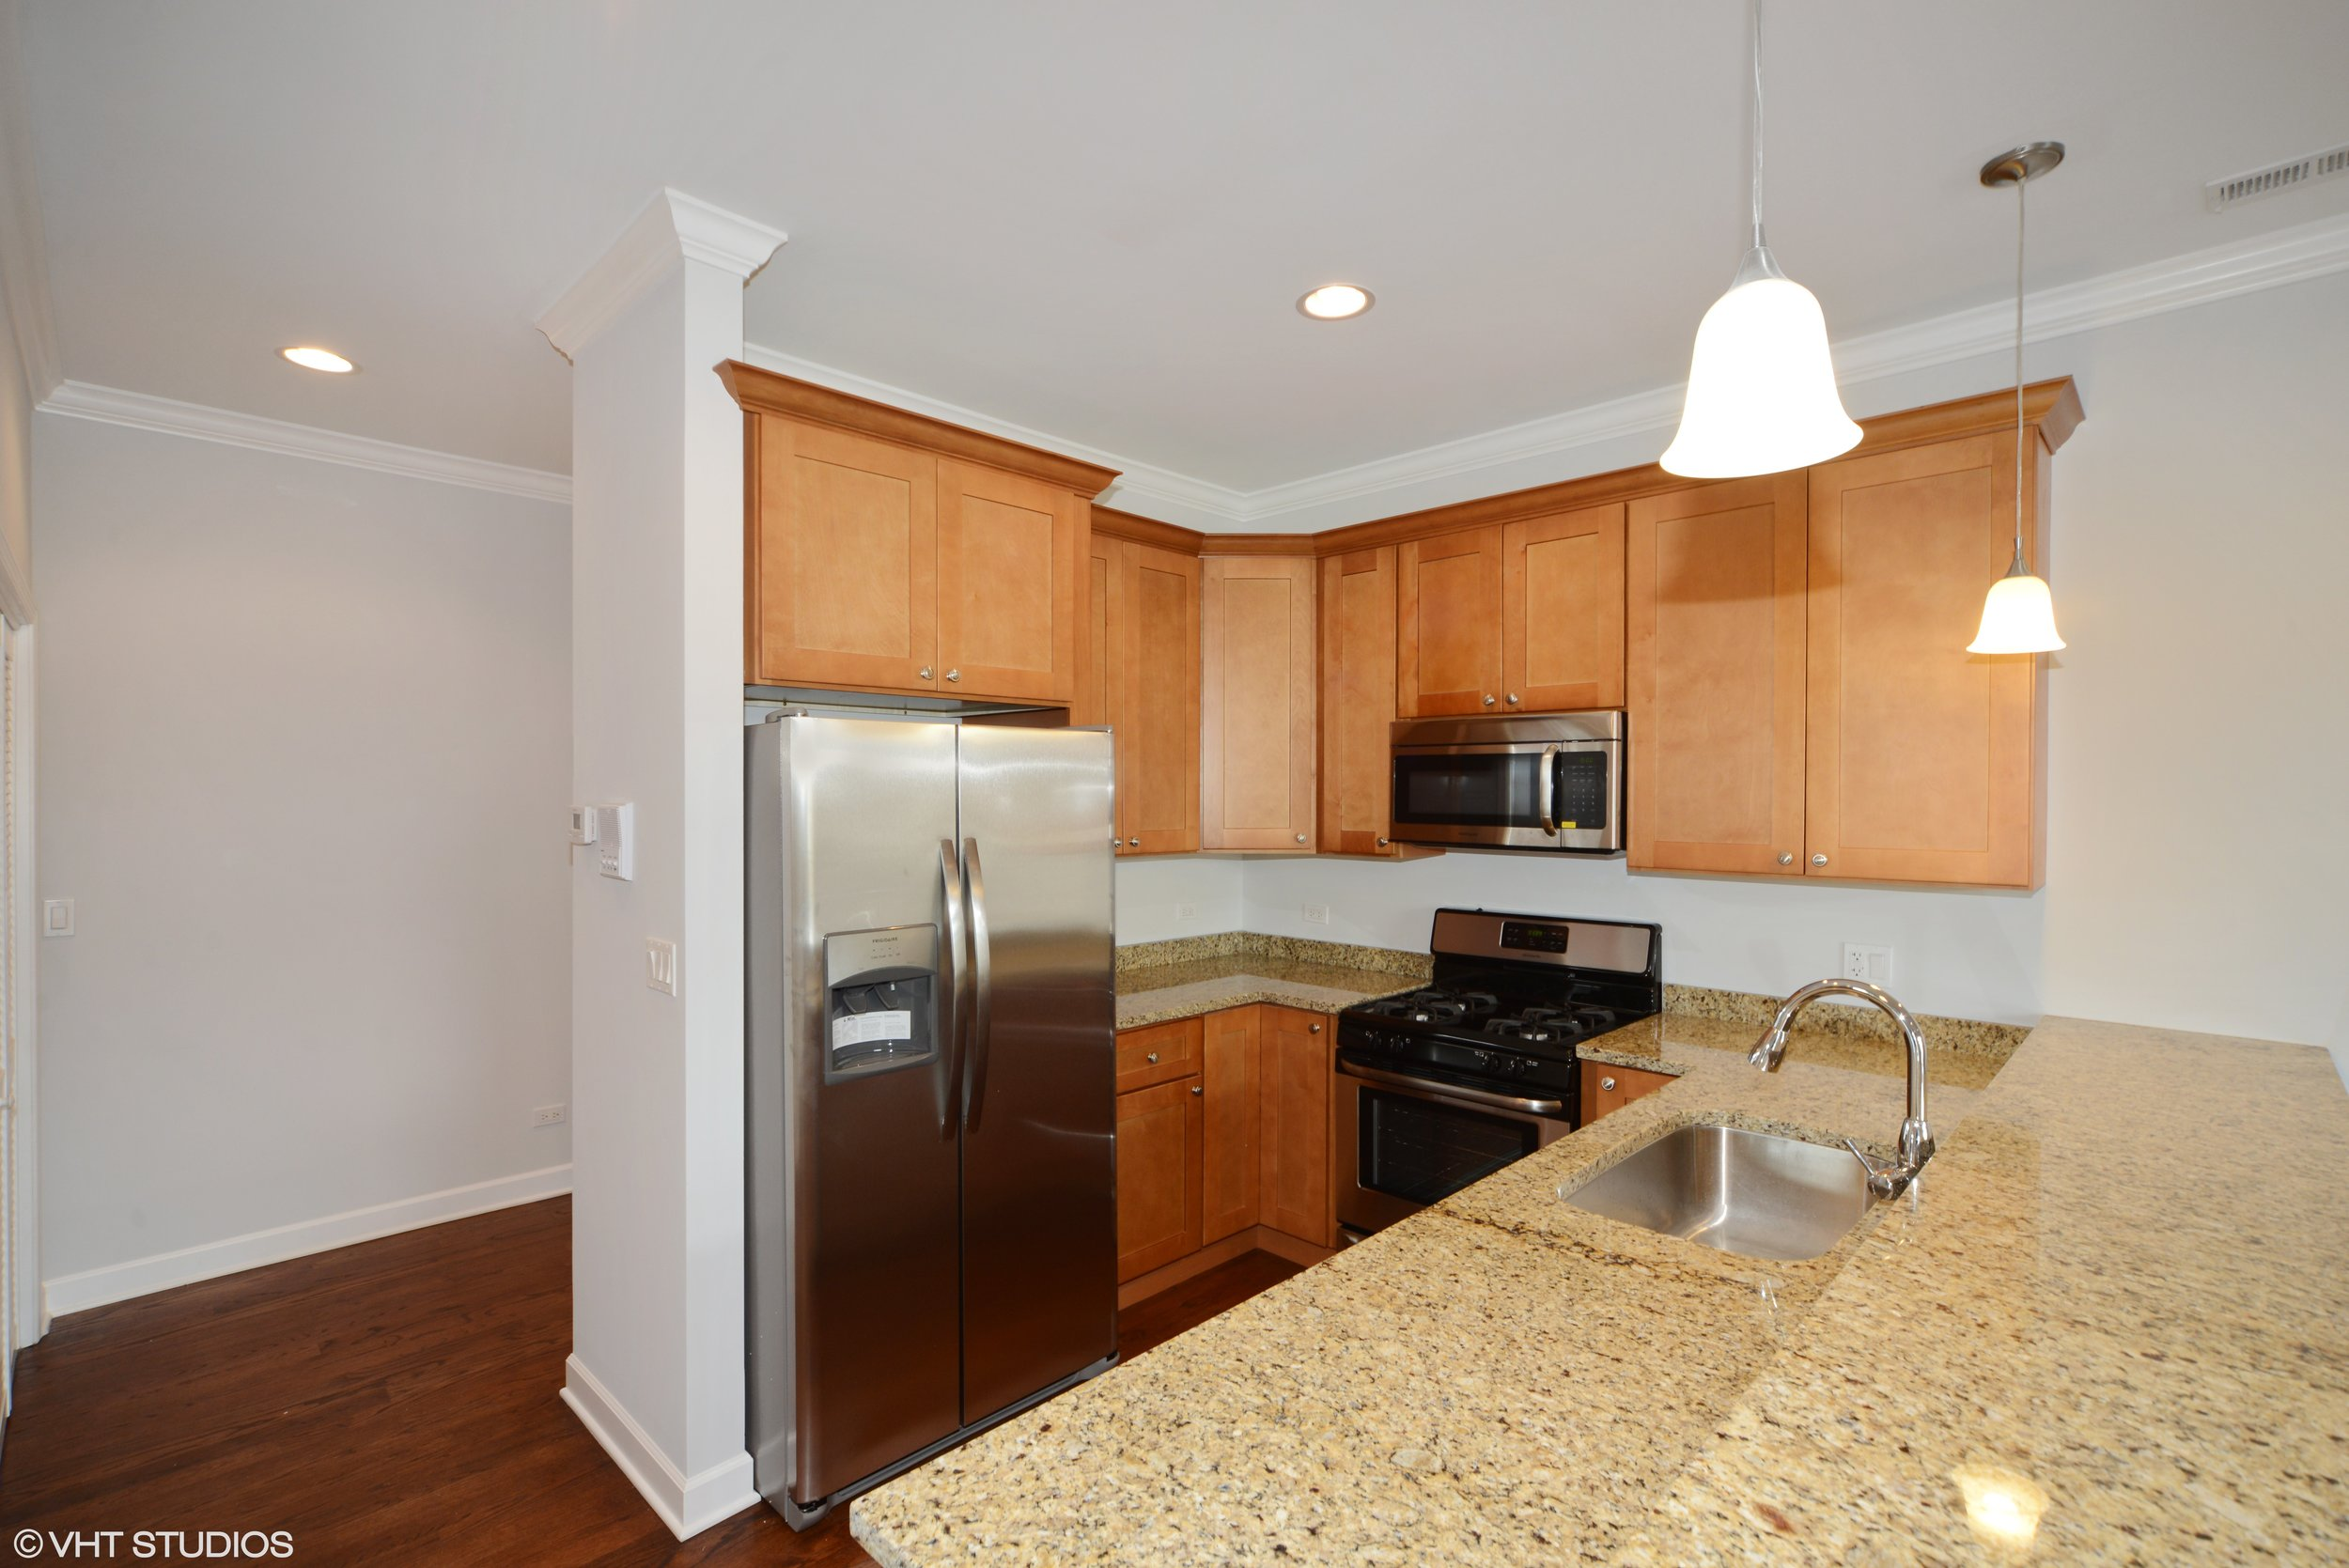 03_3234NorthCentralAve_206_5_Kitchen_HiRes.jpg